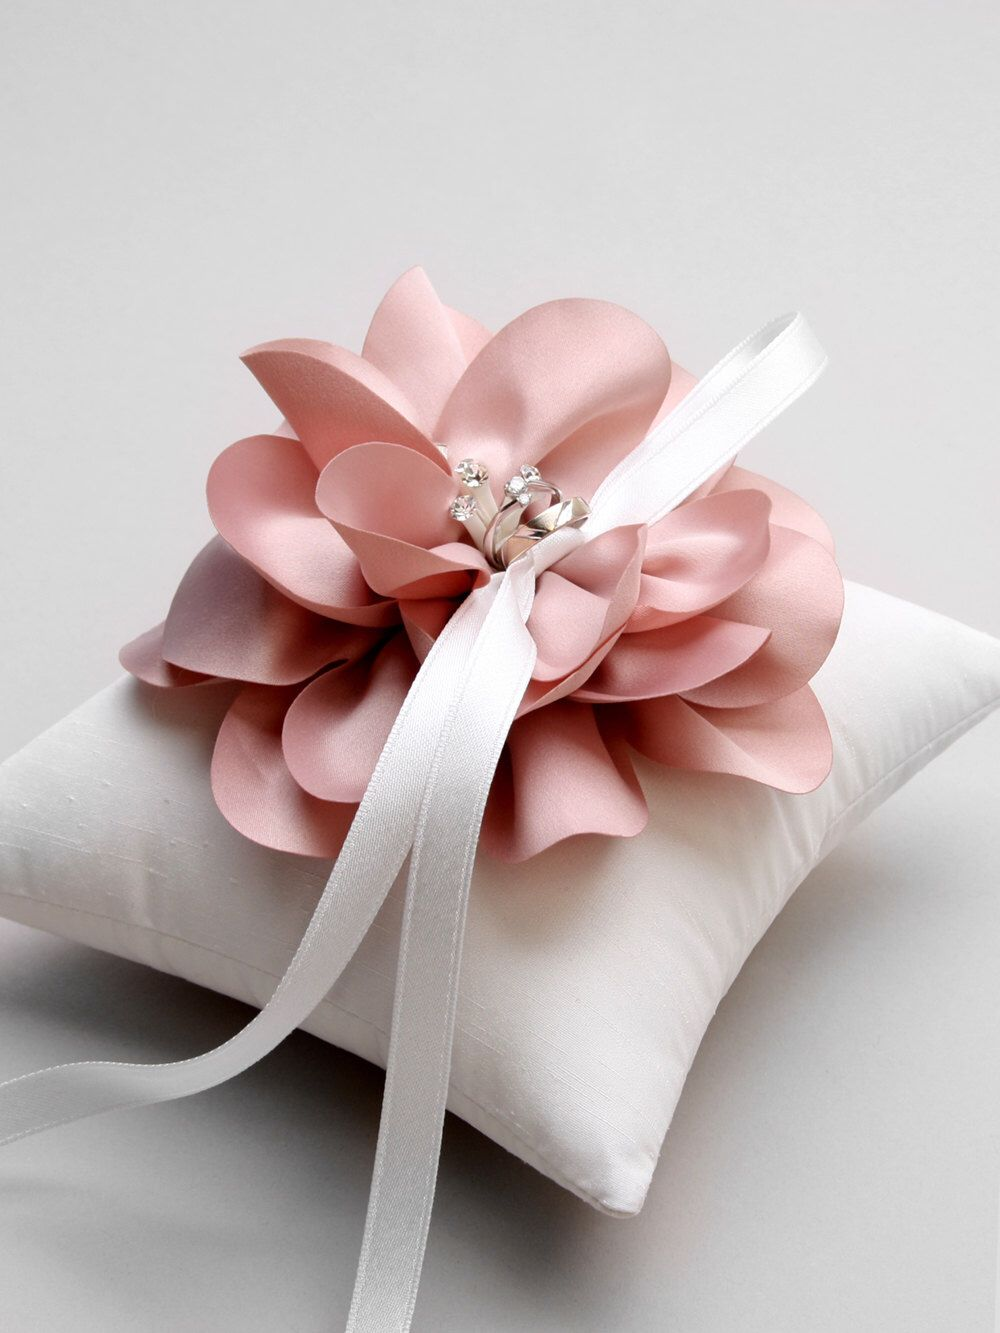 hei wid wedding pillows simply bearer pro hbh knitted ceremony pillow ring